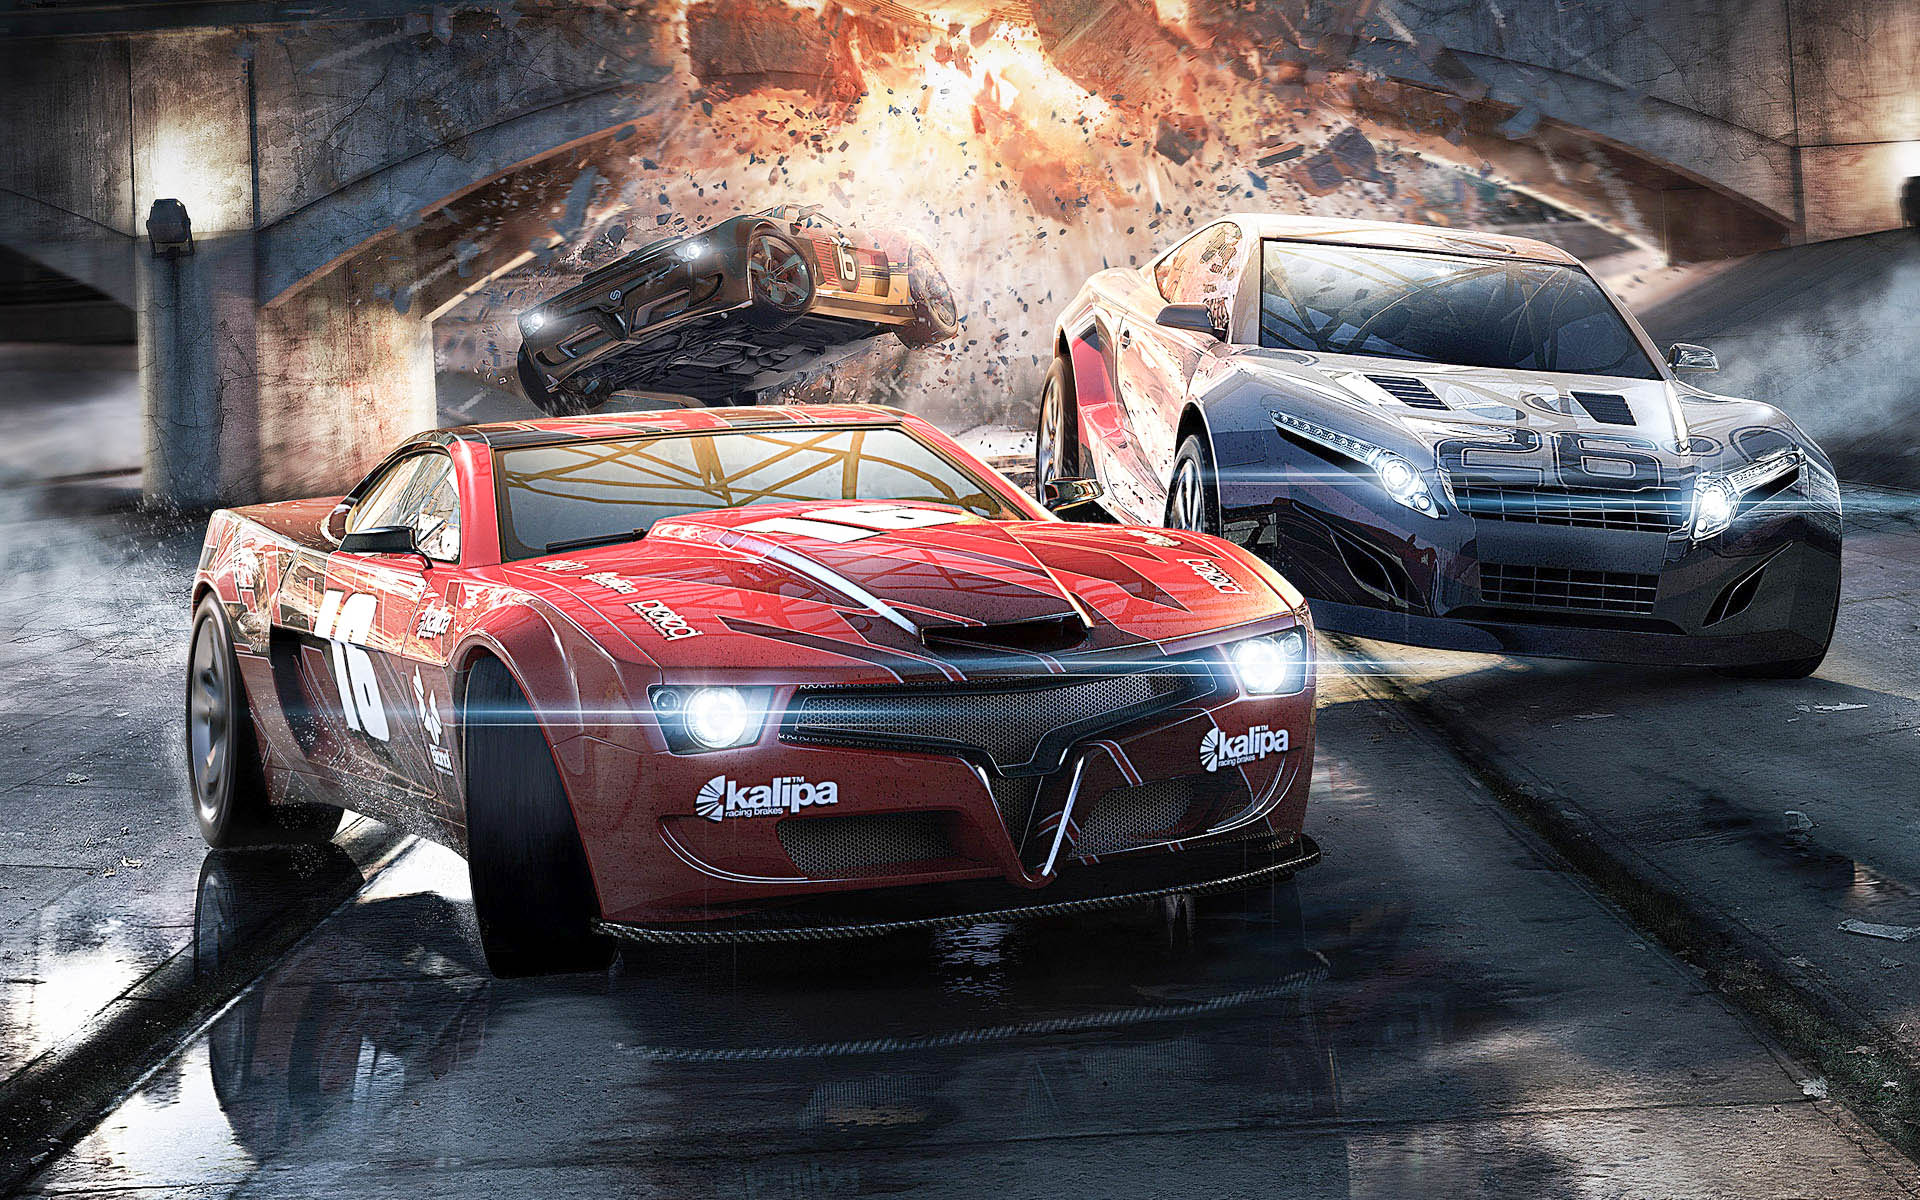 Cool Wallpapers Cars American Muscle Split Second Game High Quality Hd Wallpapers All Hd